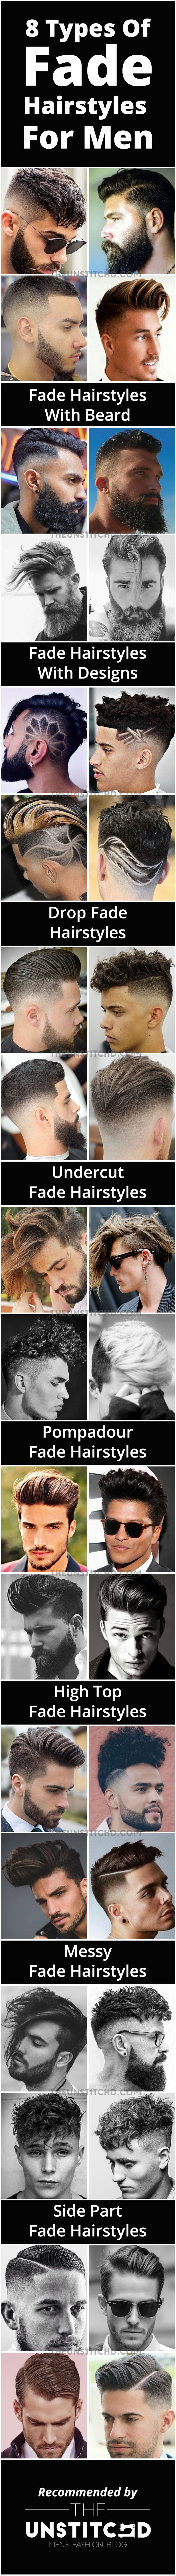 8 Types of Fade Hairstyles for Men.  You will find latest fade haircuts for men aswell. #hairstylesformen